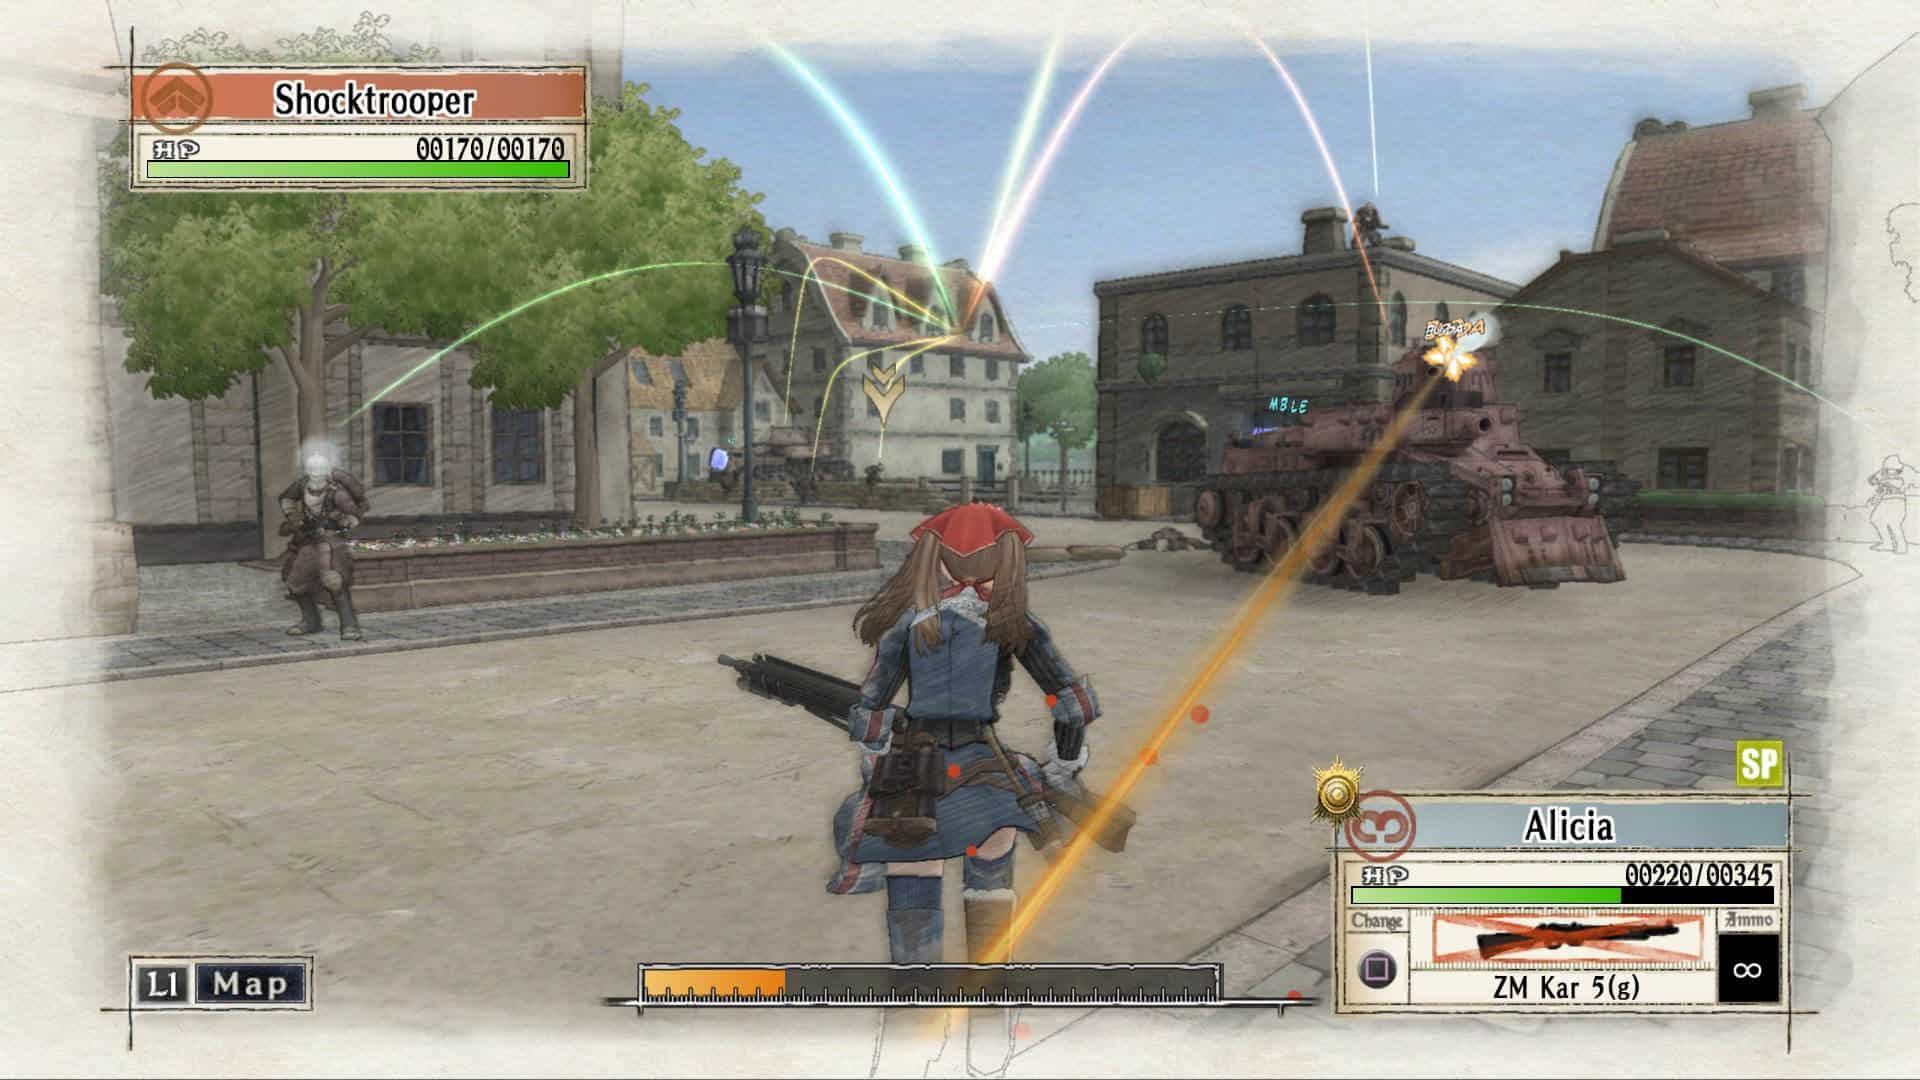 3. Valkyria Chronicles Remastered